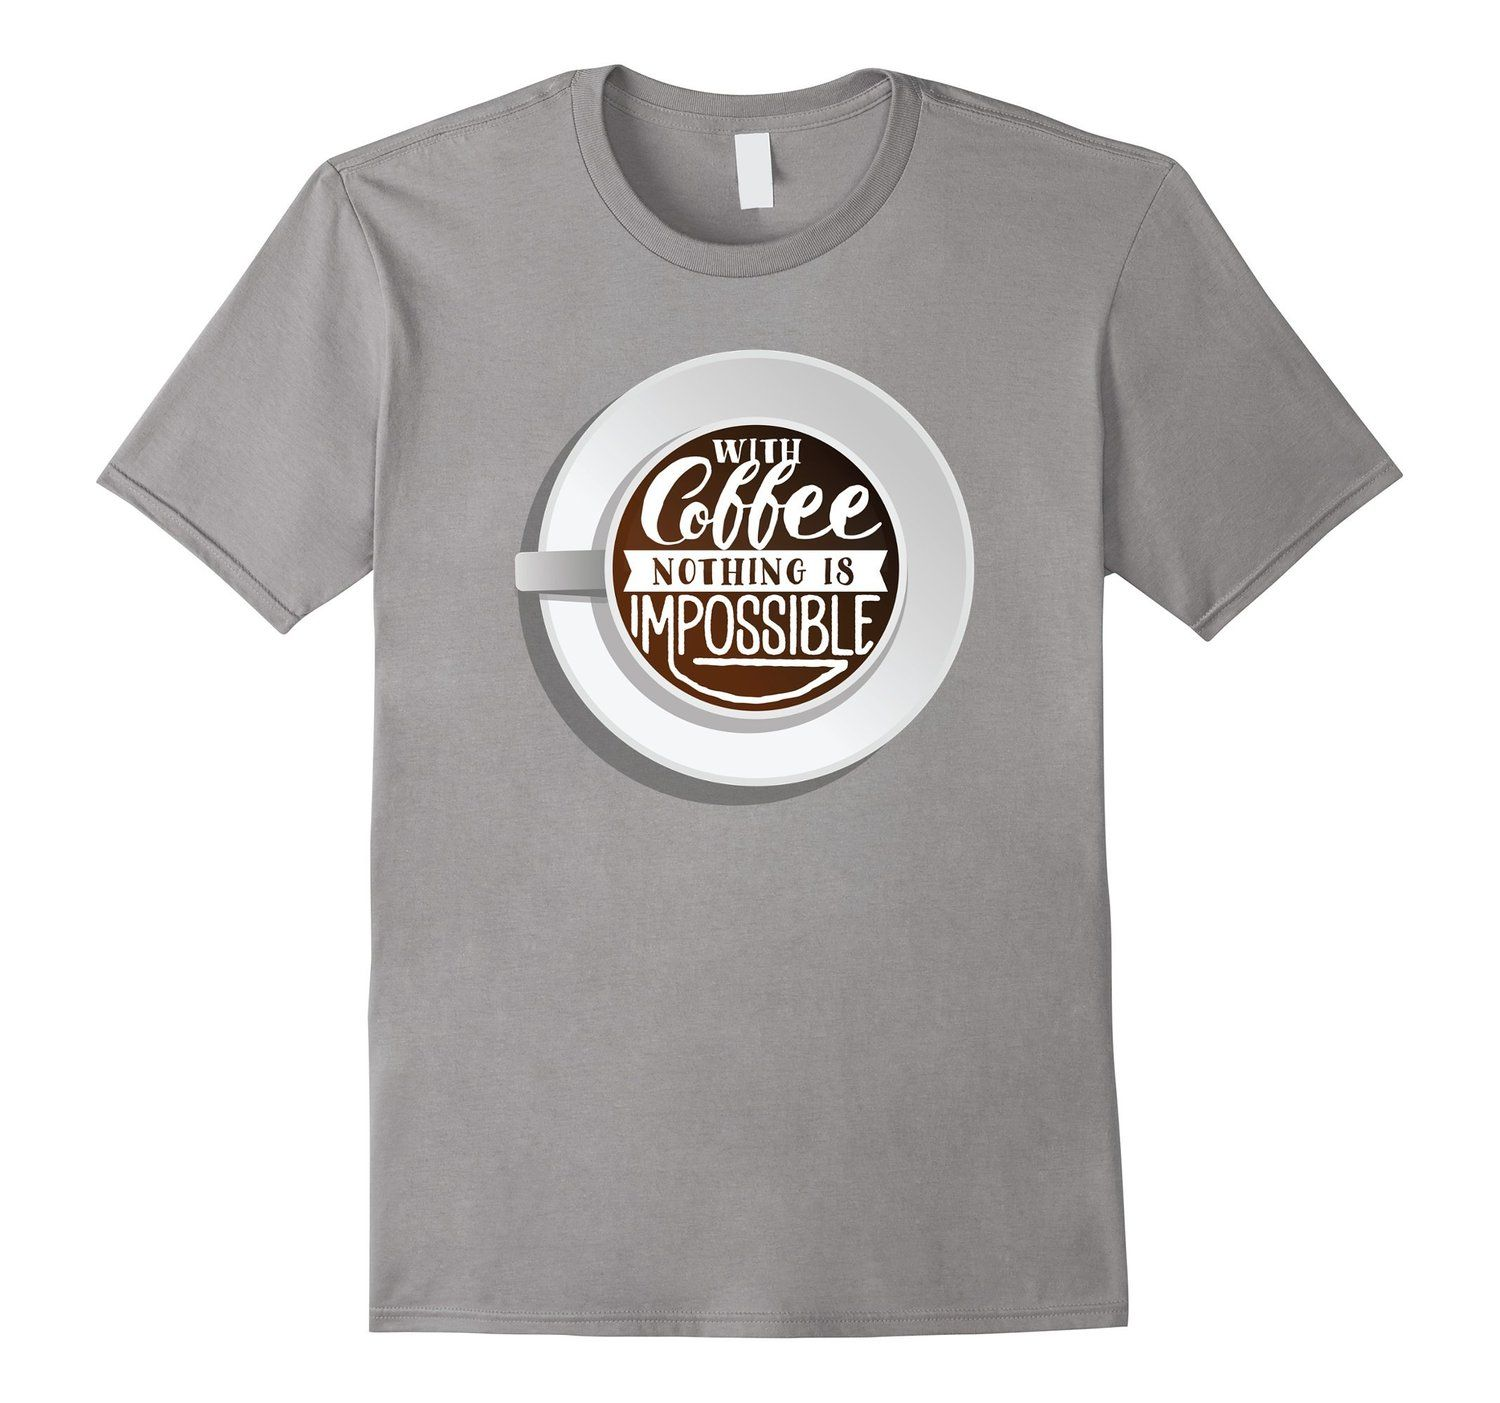 Coffee Quote T Shirt With Coffee Nothing Is Impossible Https